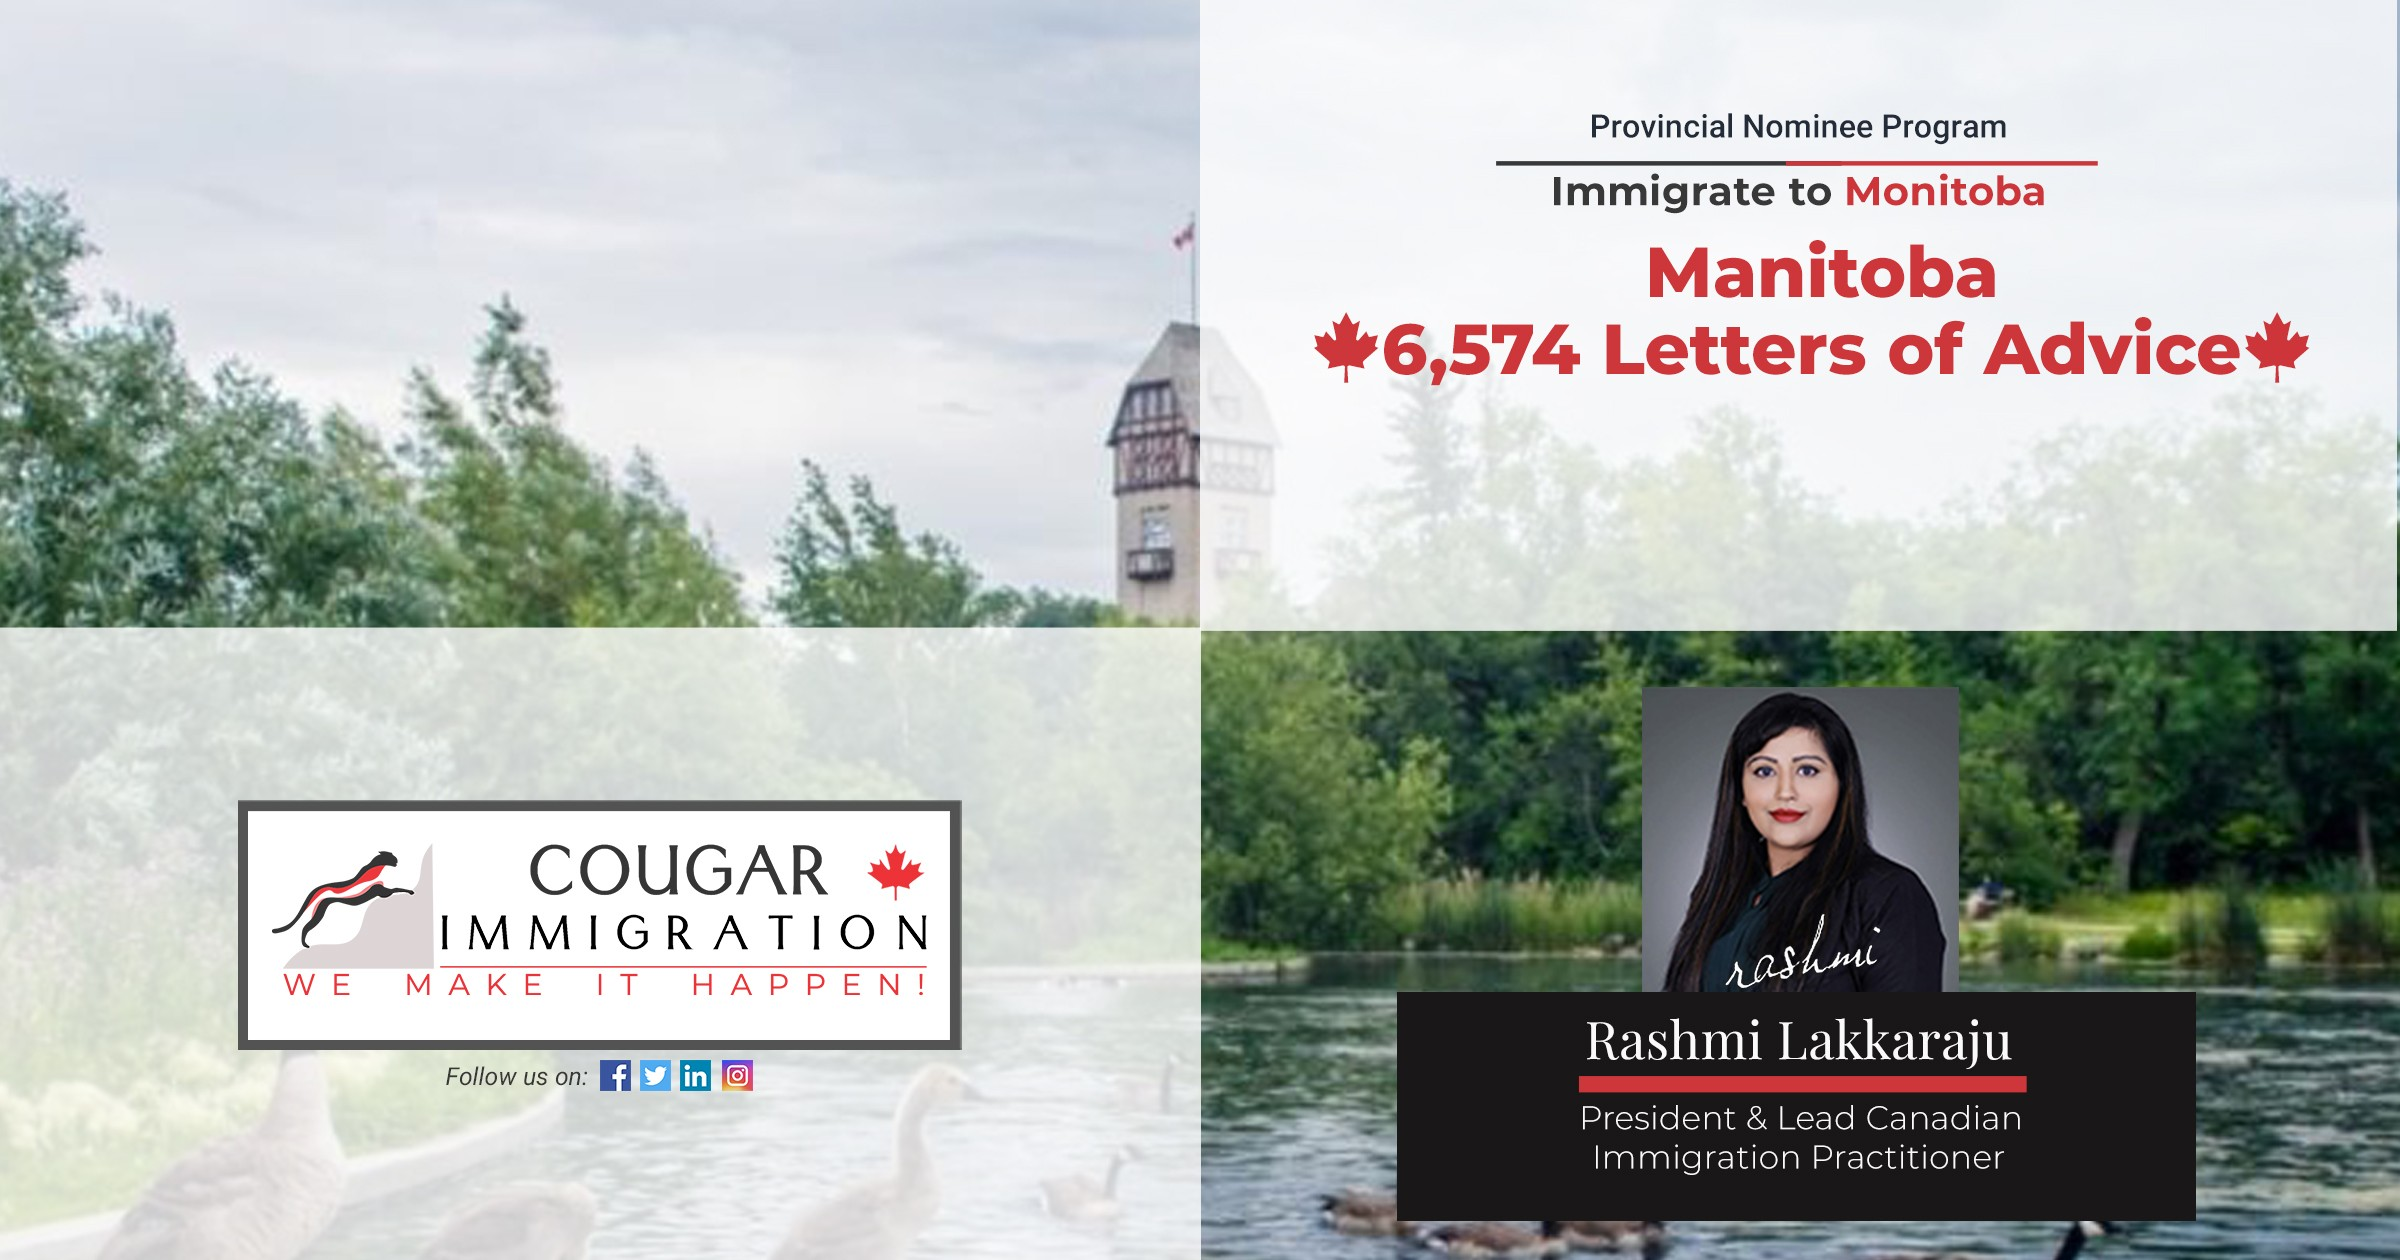 Manitoba has now issued 6,574 Letters of Advice thumbnail